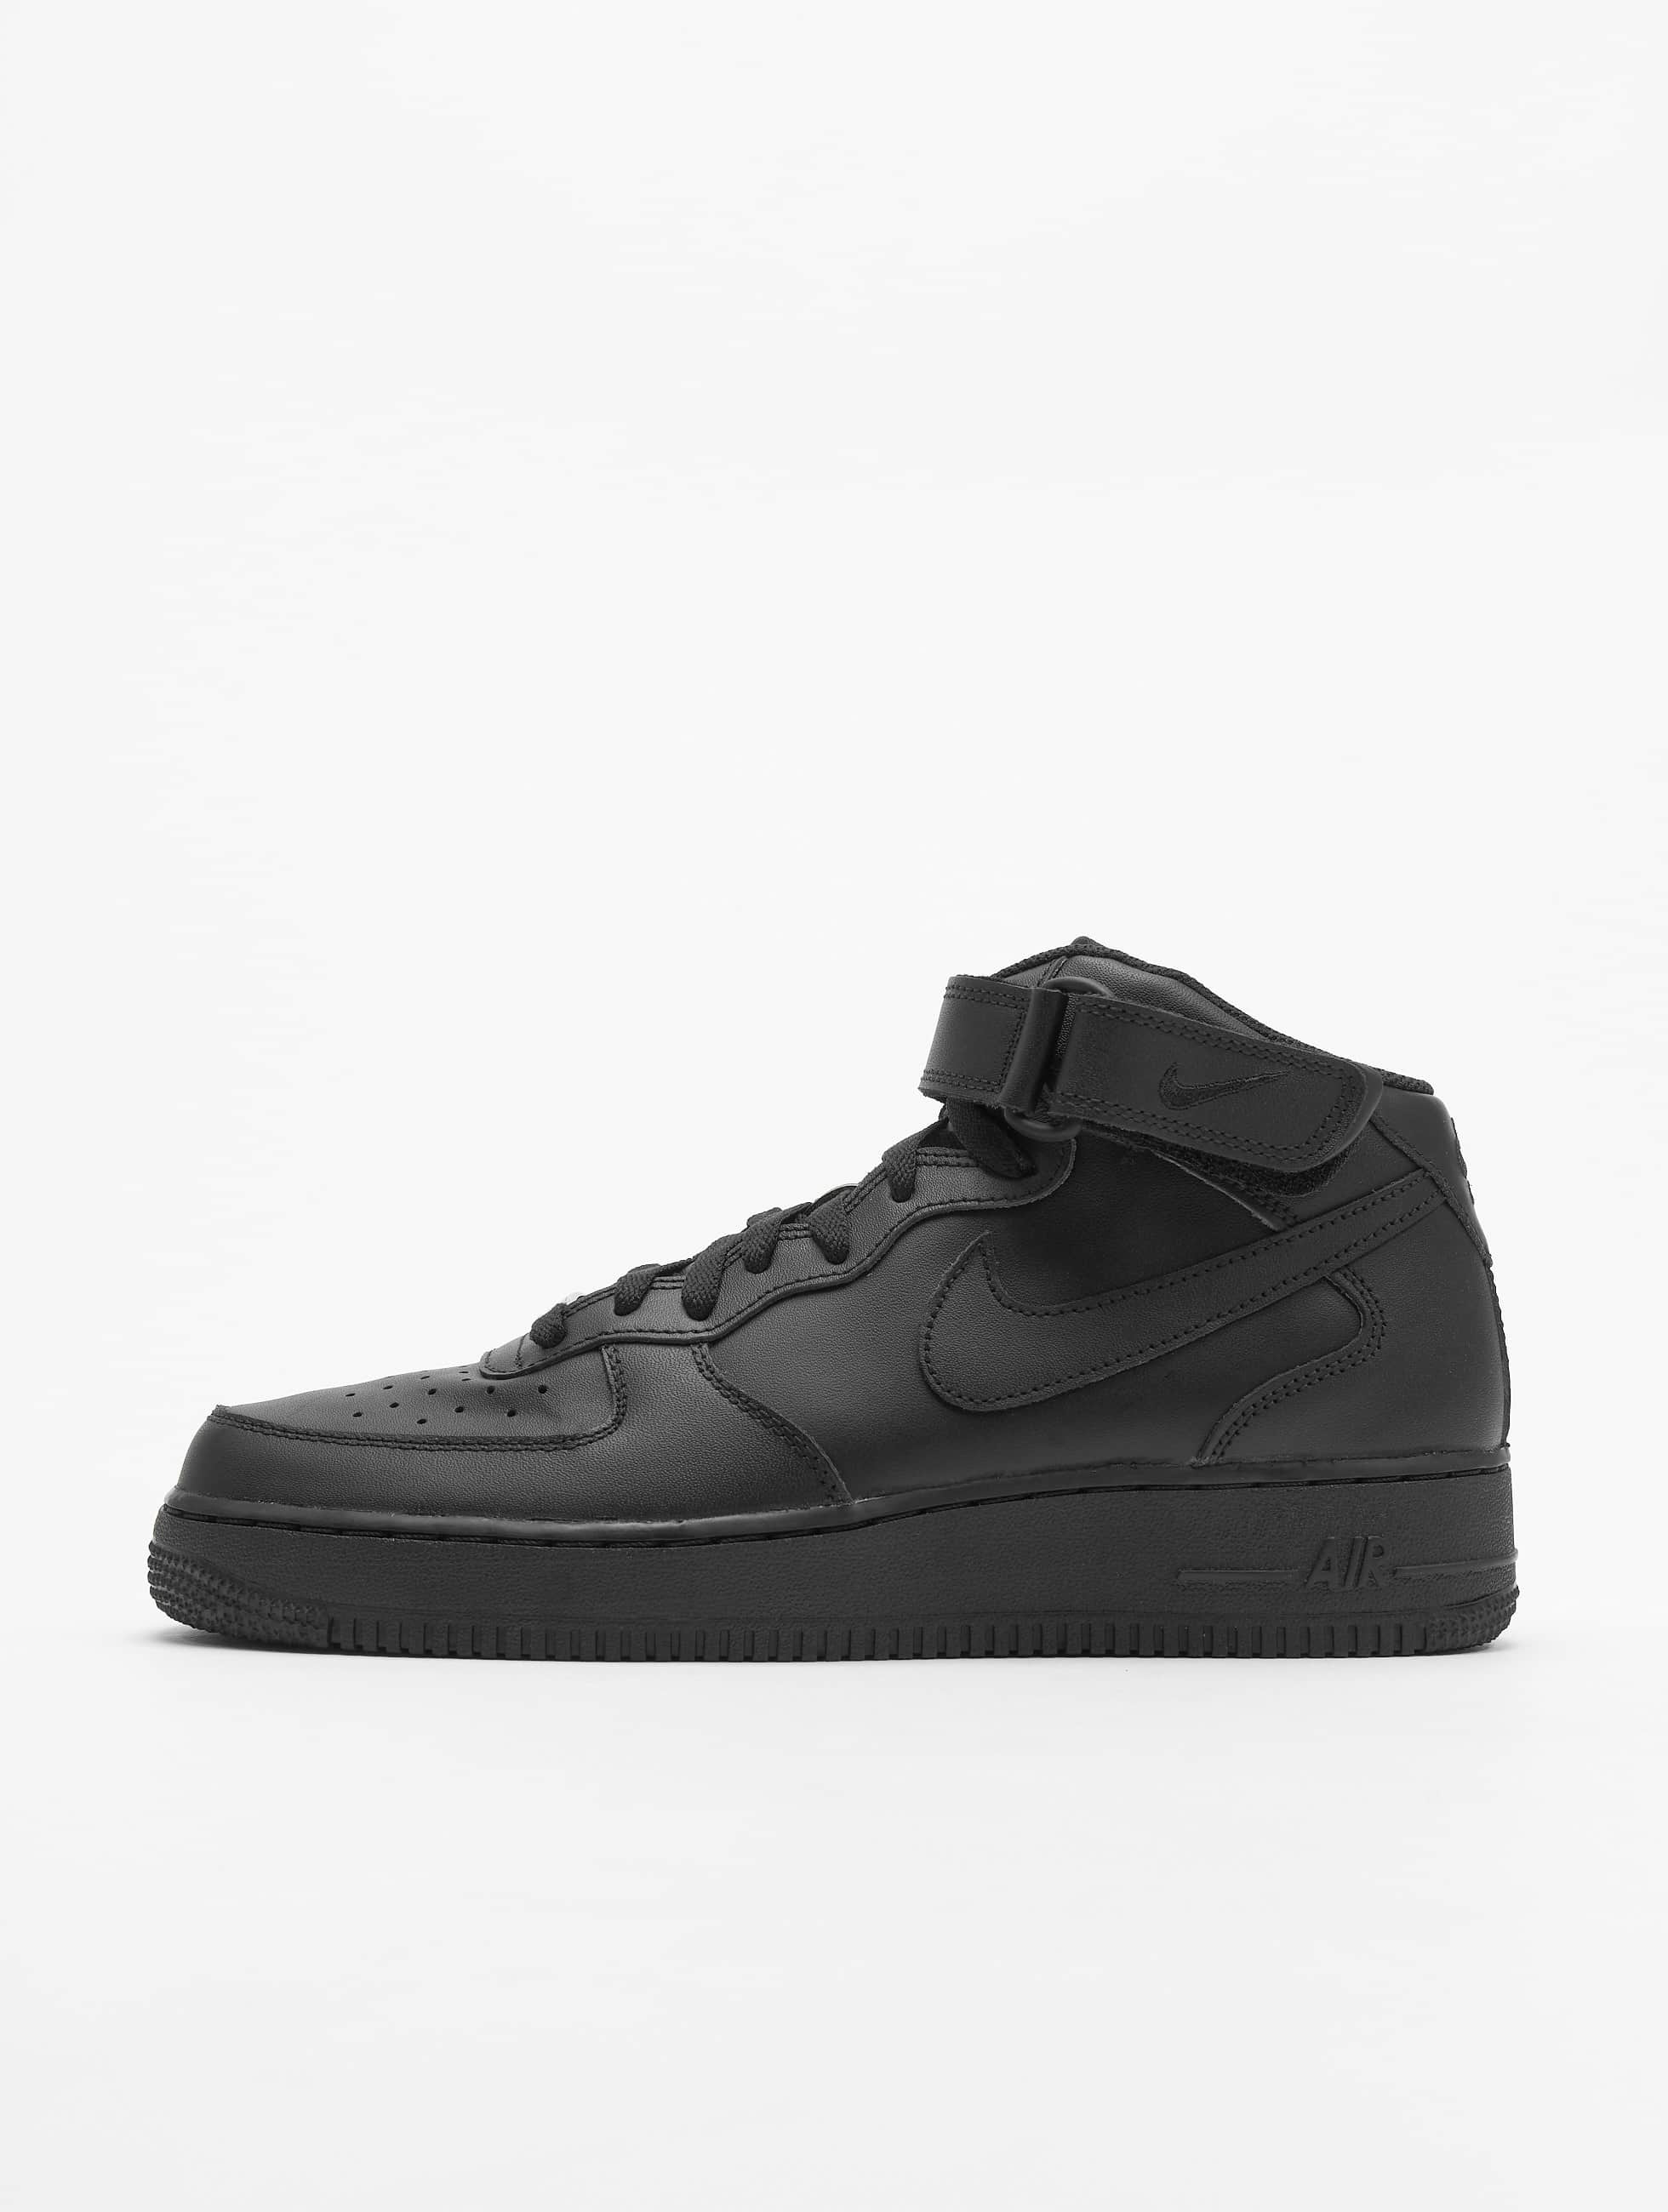 Nike Zapatillas de deporte Air Force 1 Mid '07 Basketball Shoes negro